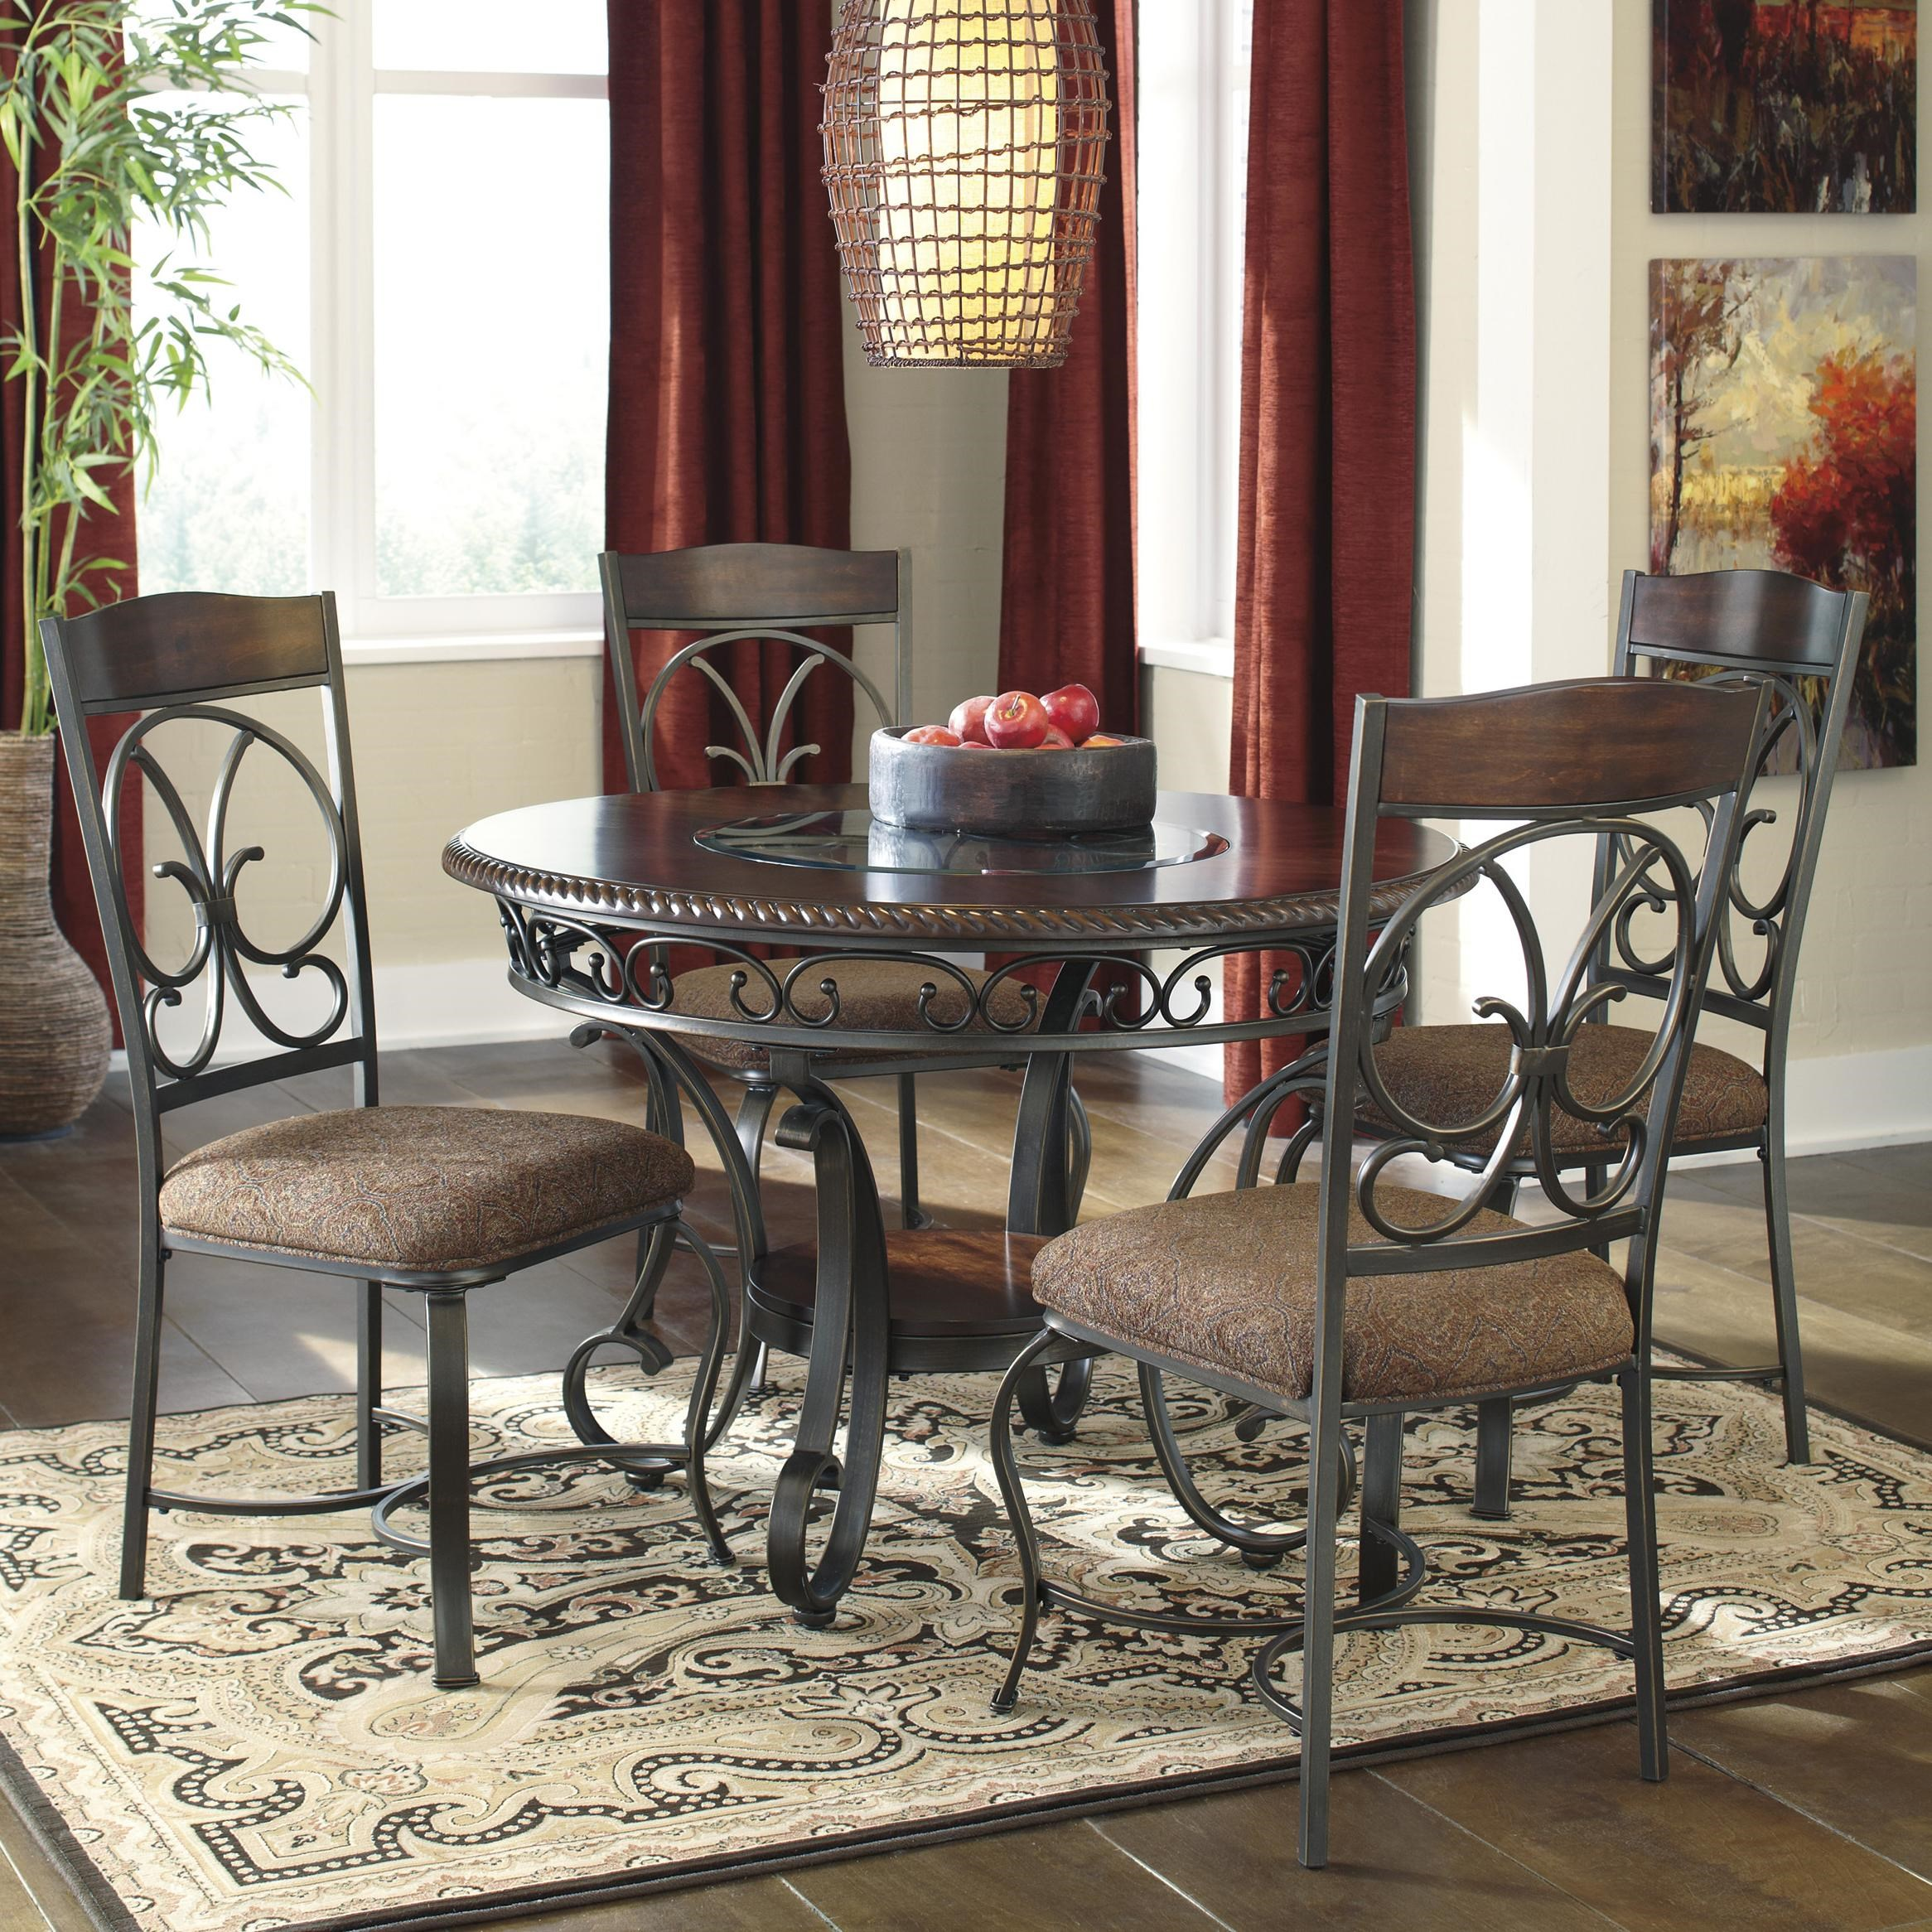 Dining Room Chairs Set Of 4 Glambrey Round Dining Table And 4 Chair Set With Metal Accents By Ashley Signature Design At Rooms And Rest